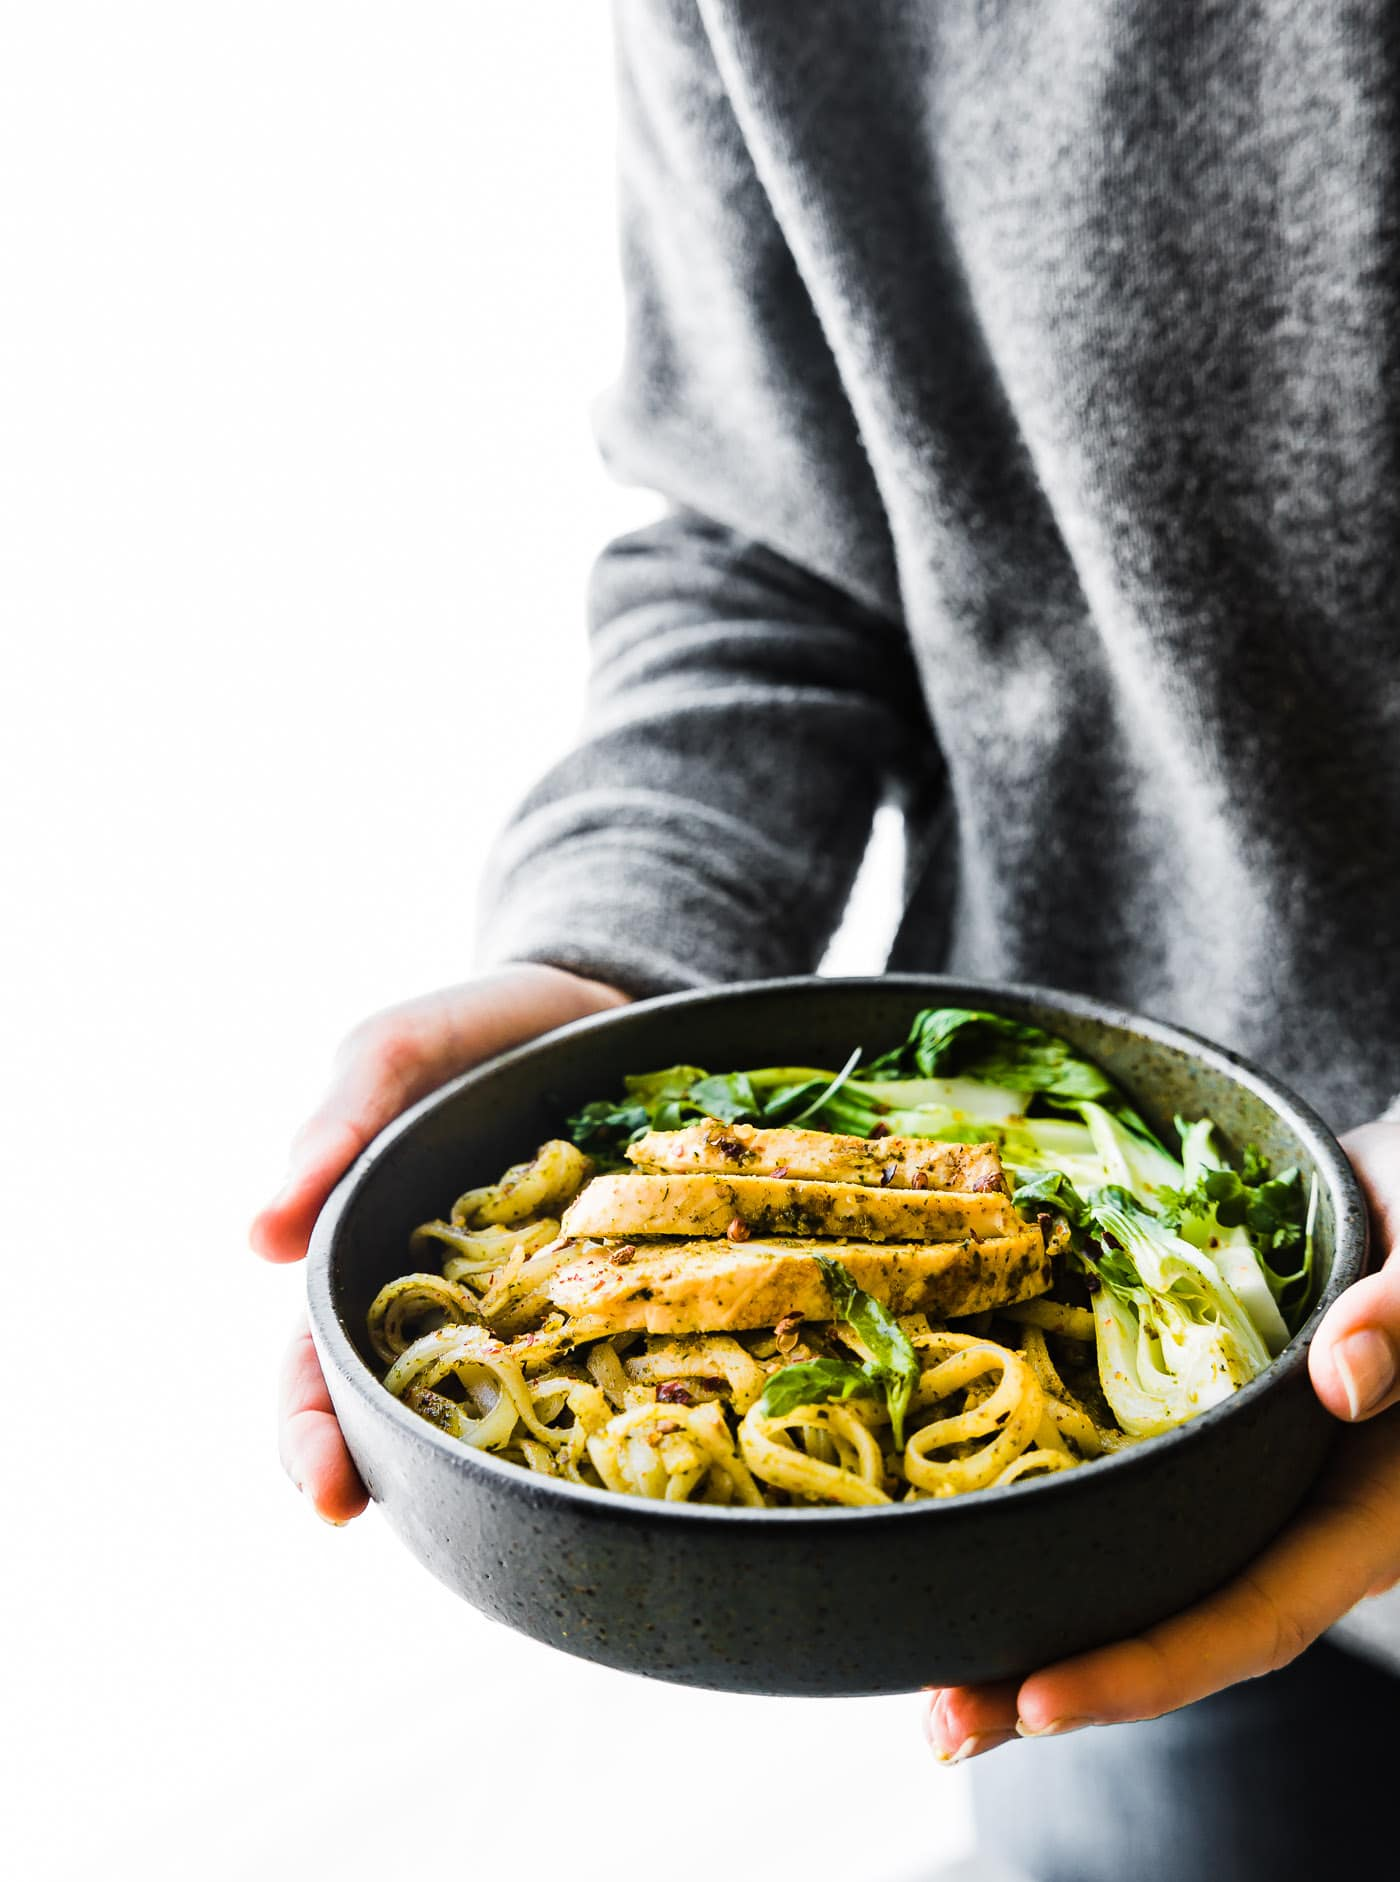 woman holding bowl of gluten free stir fry noodles with grilled chicken